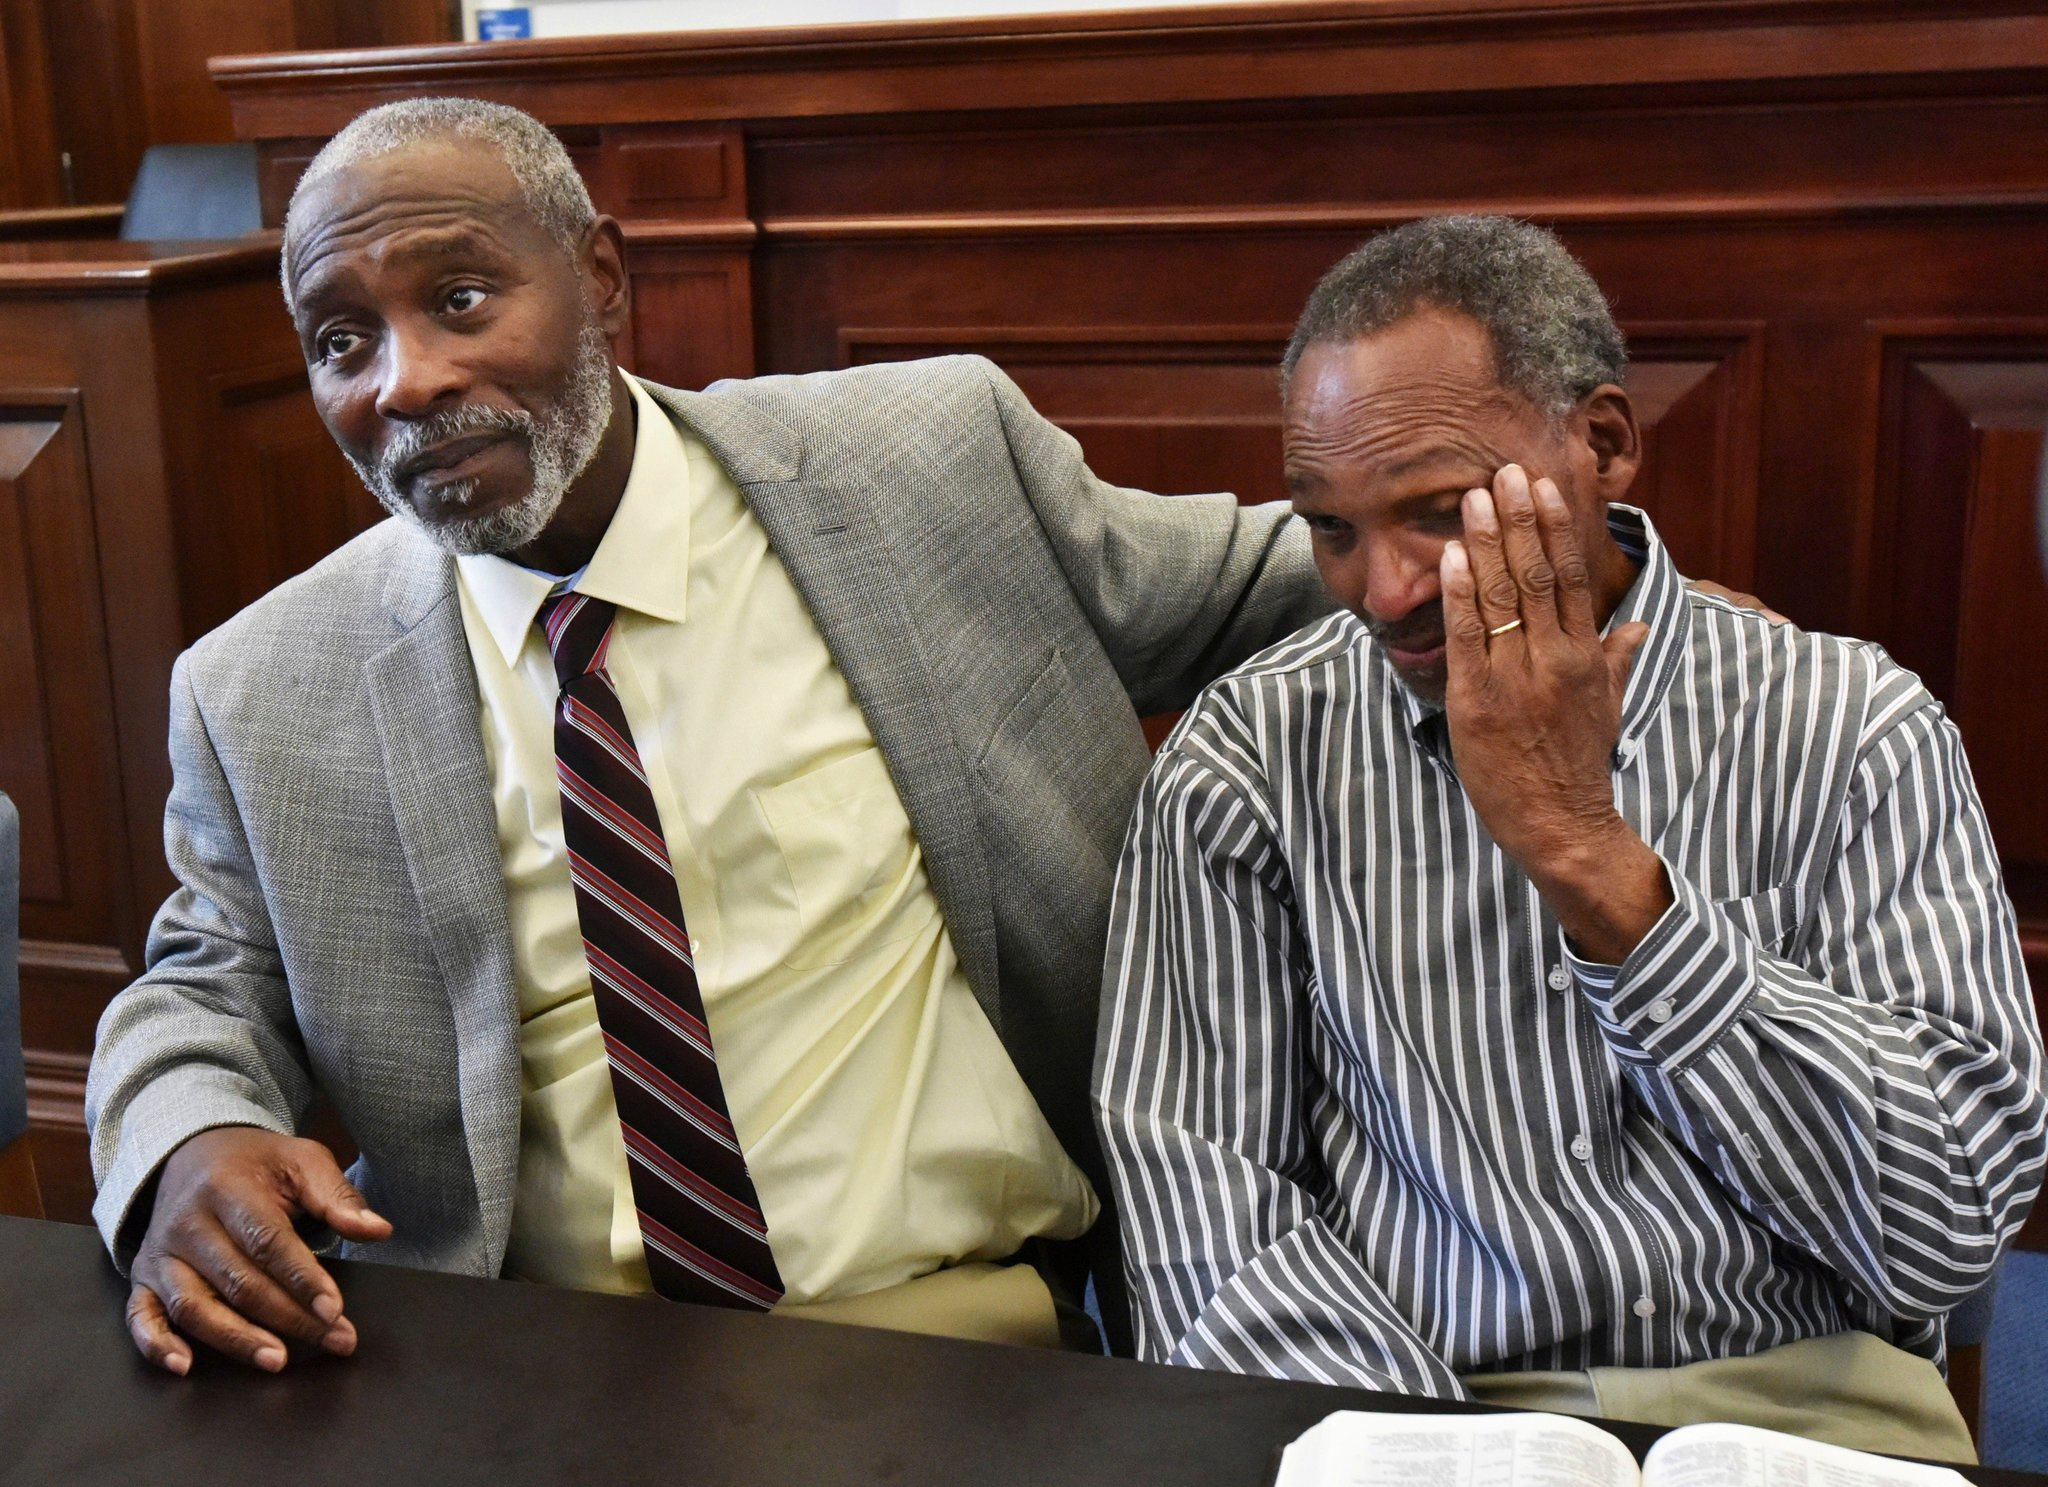 Wrongfully convicted Florida man to get $2 million in reparations